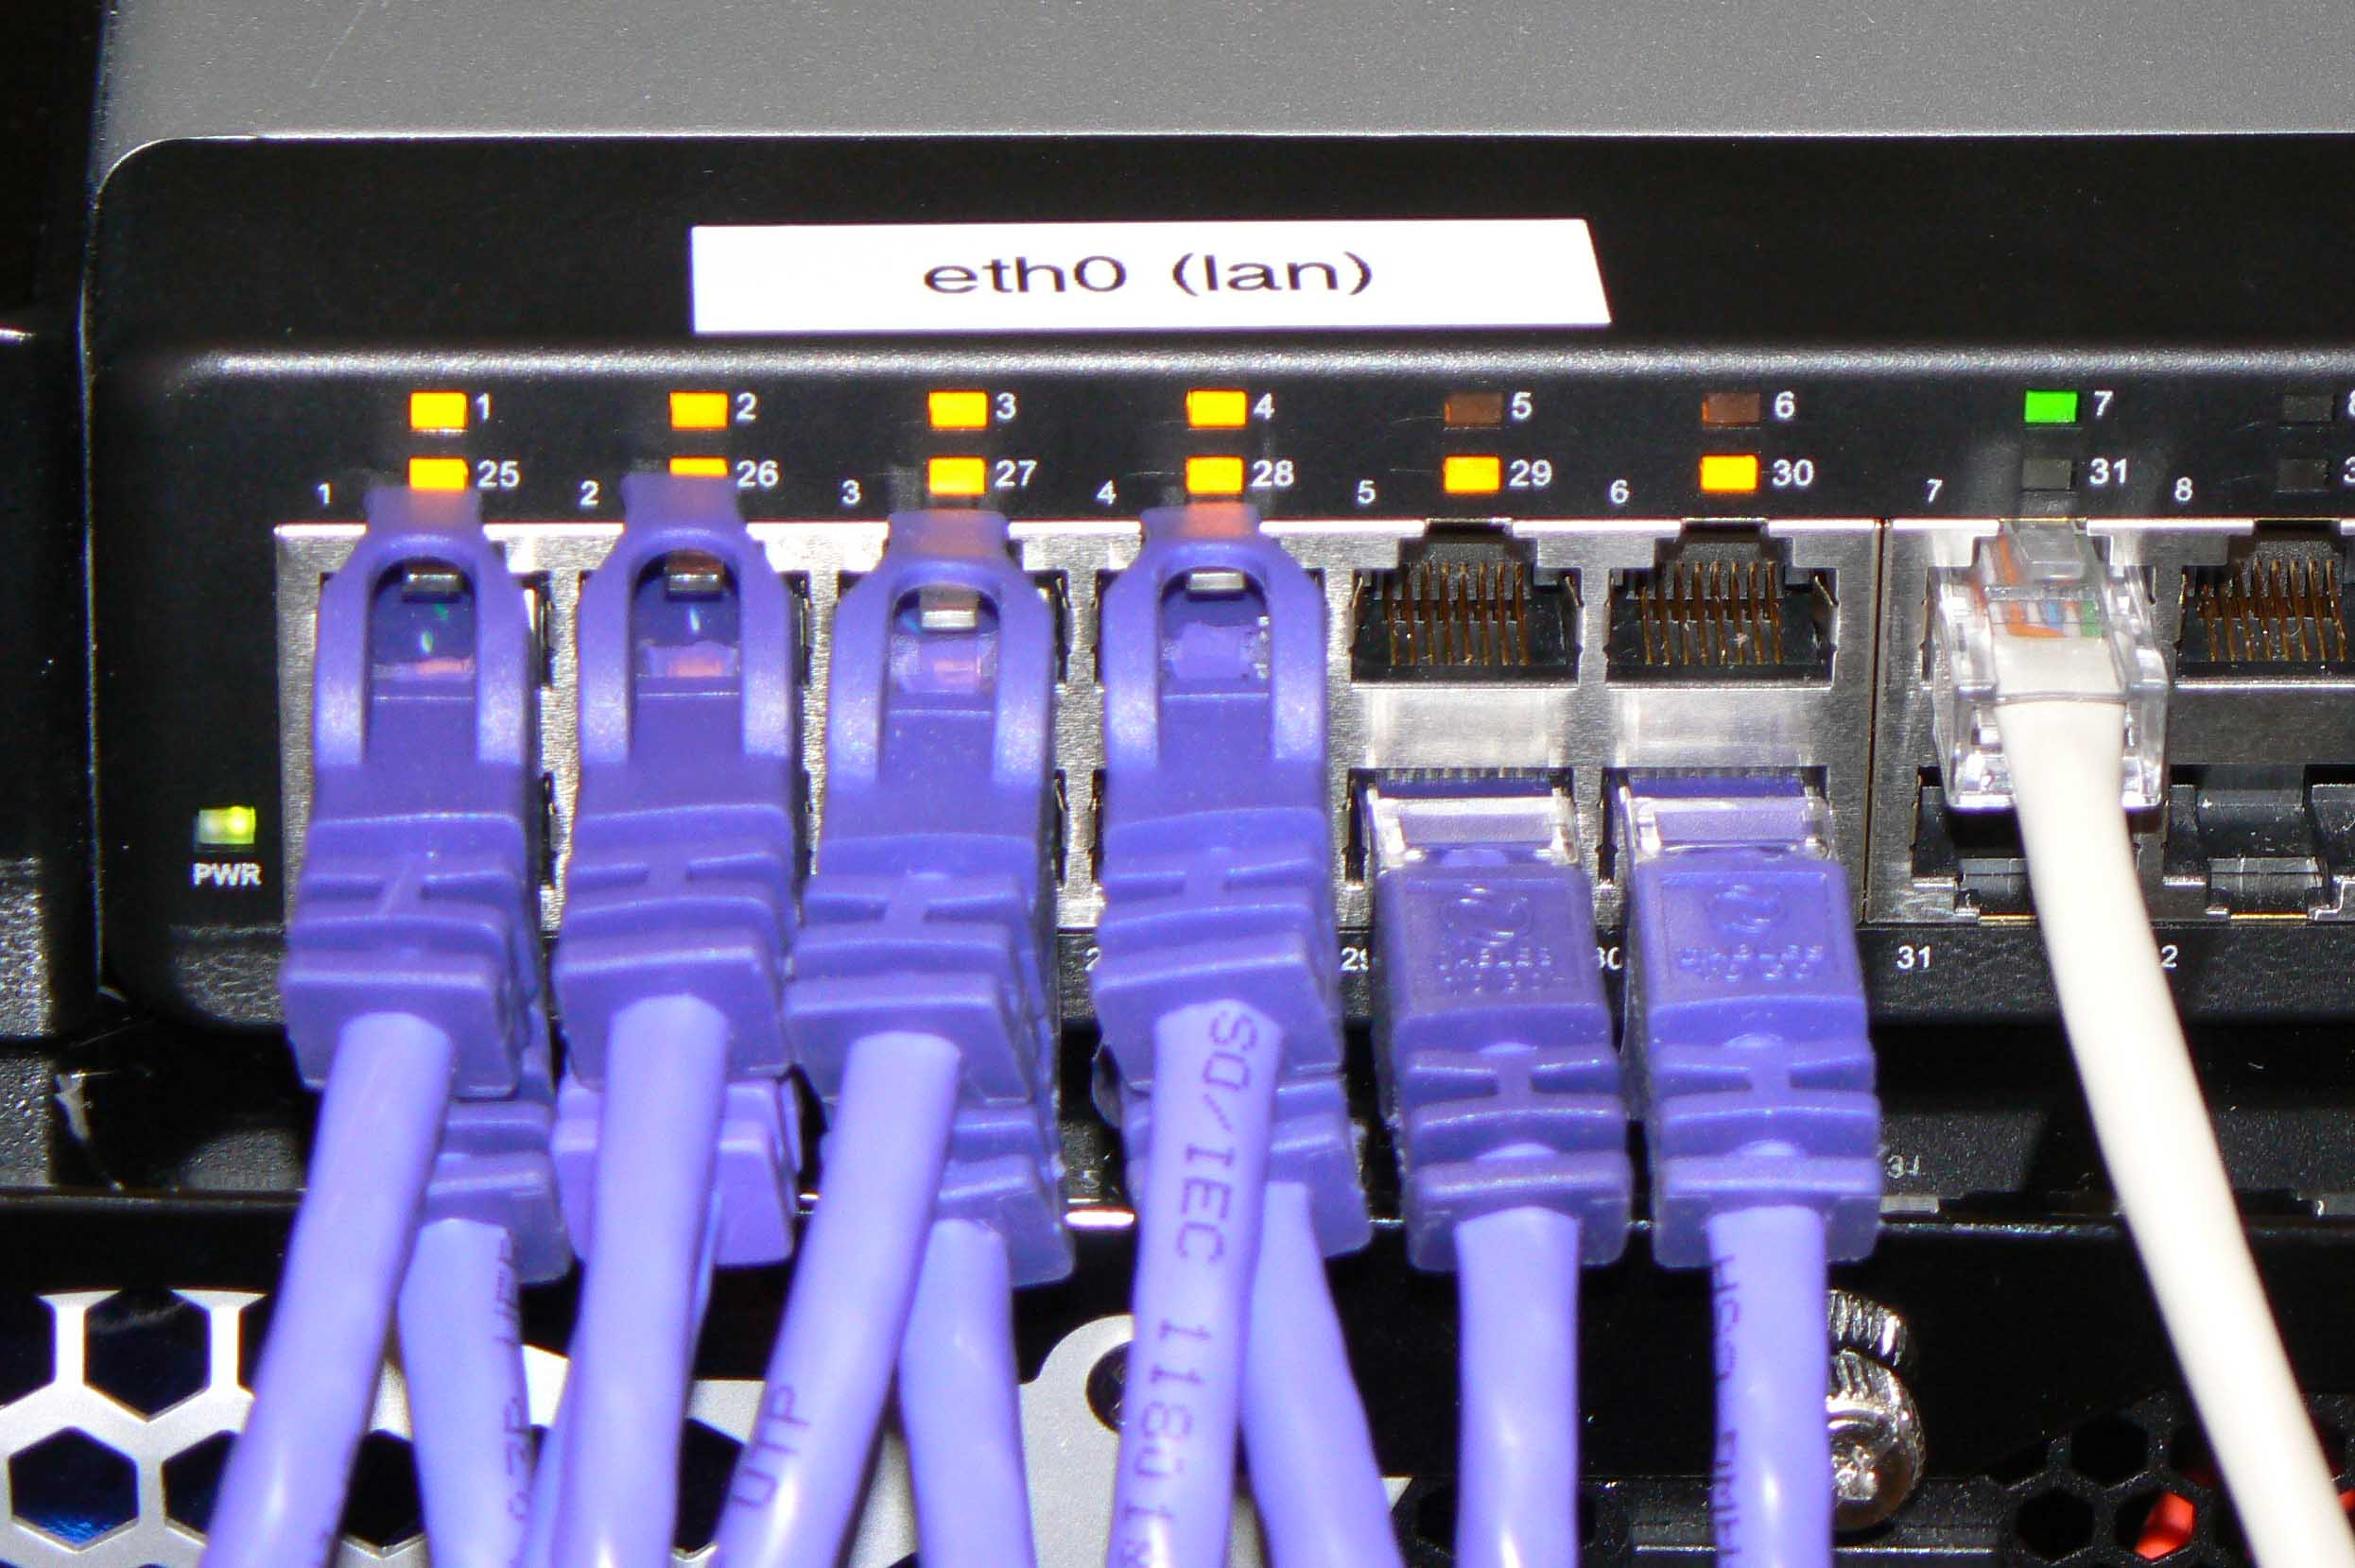 Alamo GA Pro Onsite Cabling for Voice & Data Networks, Low Voltage Inside Wiring Services